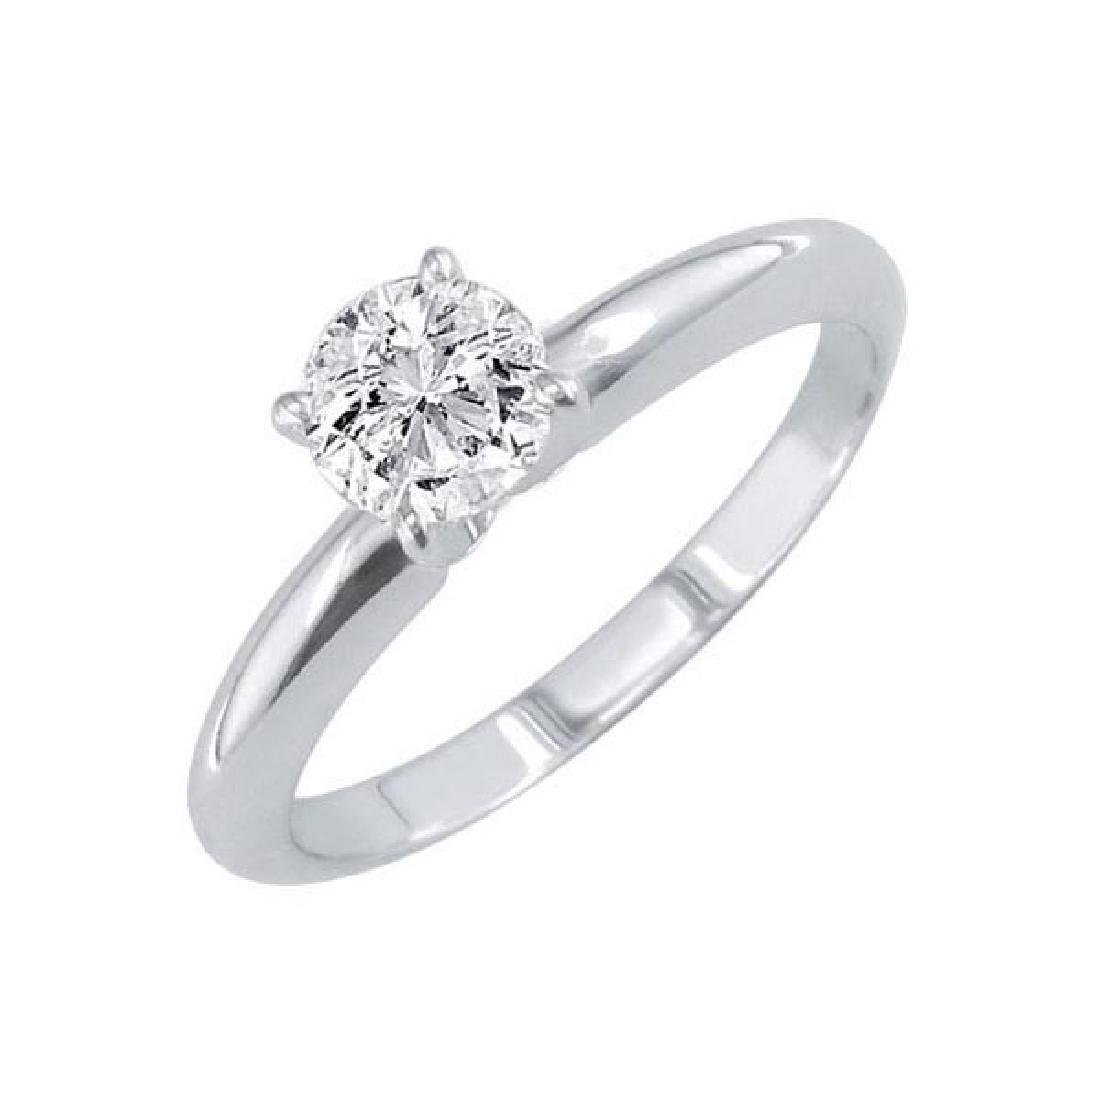 Certified 0.52 CTW Round Diamond Solitaire 14k Ring J/S